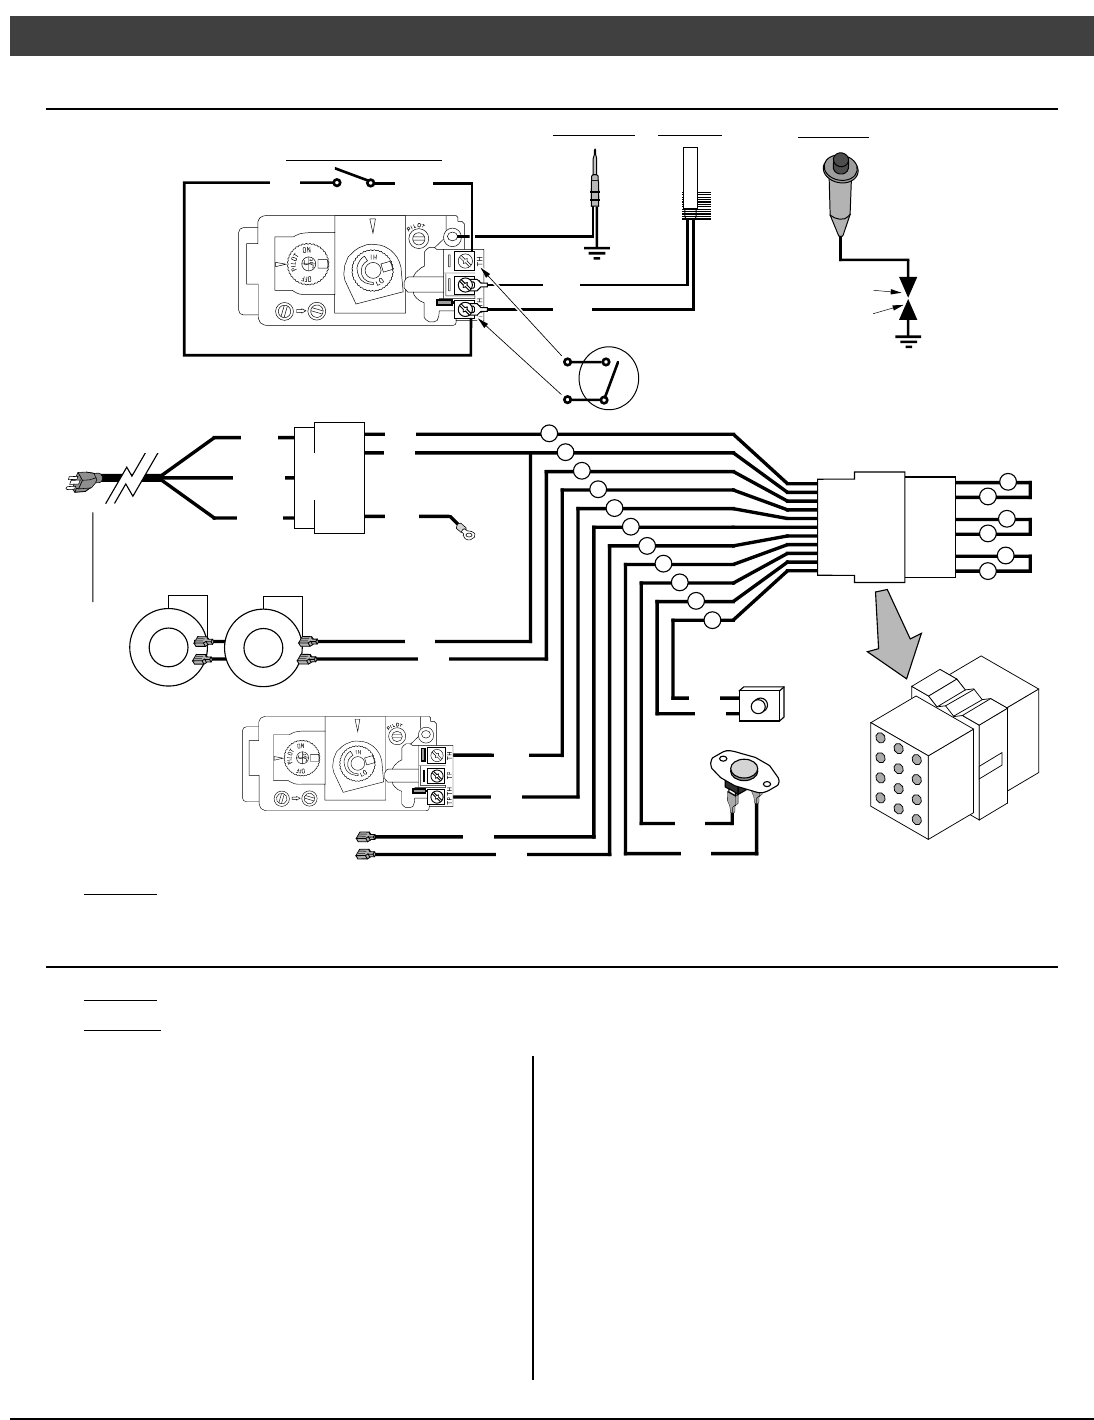 electric fireplace wiring diagram electric automotive wiring electric fireplace wiring diagram b4490158 0930 4e25 8d8f 8b0720817eda bg21